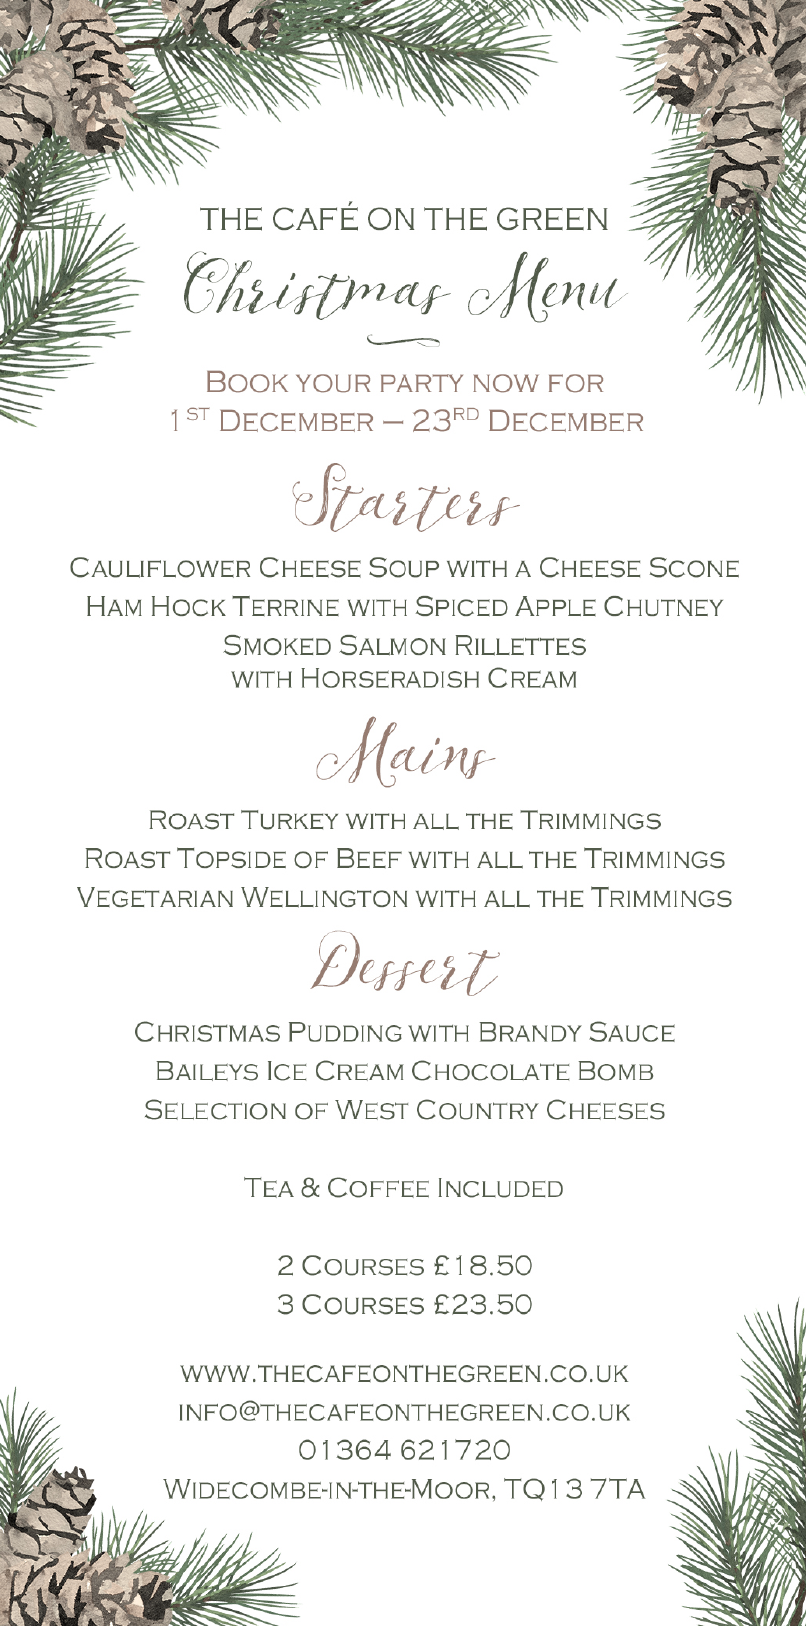 CHRISTMAS 2018 - Come and join us at the Cafe to celebrate this Christmas. Available 7 days a week, 12-3pm. Please call us on 01364 621720 or email us on info@thecafeonthegreen.co.uk to make a booking (menu choices need to be made three days before your booking).